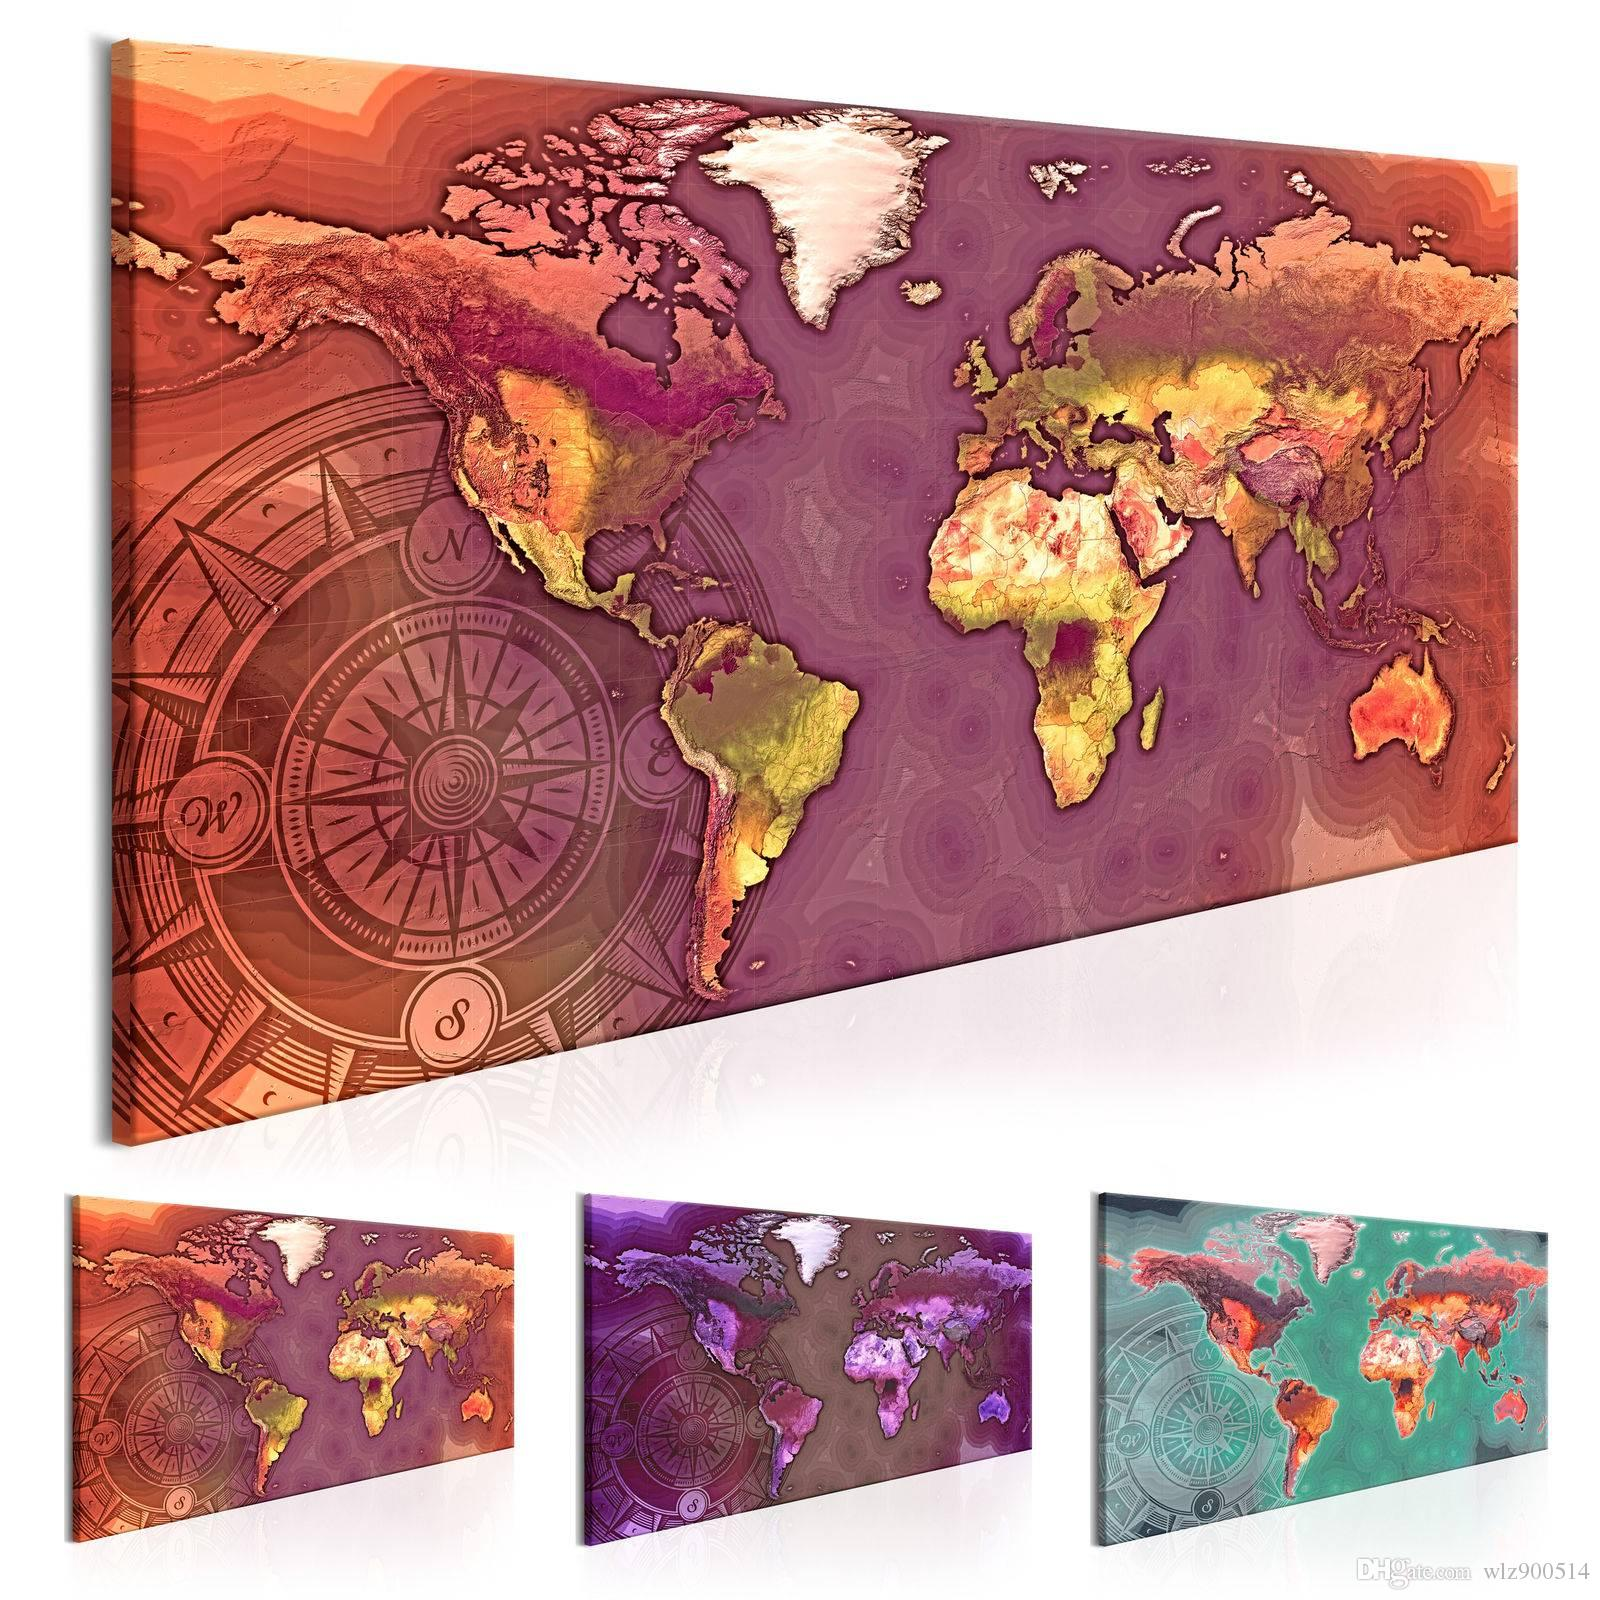 Unframed 1 Panel HD Printed Canvas Print Painting World Map Home Decoration Wall Pictures for Living Room Wall Art on Canvas